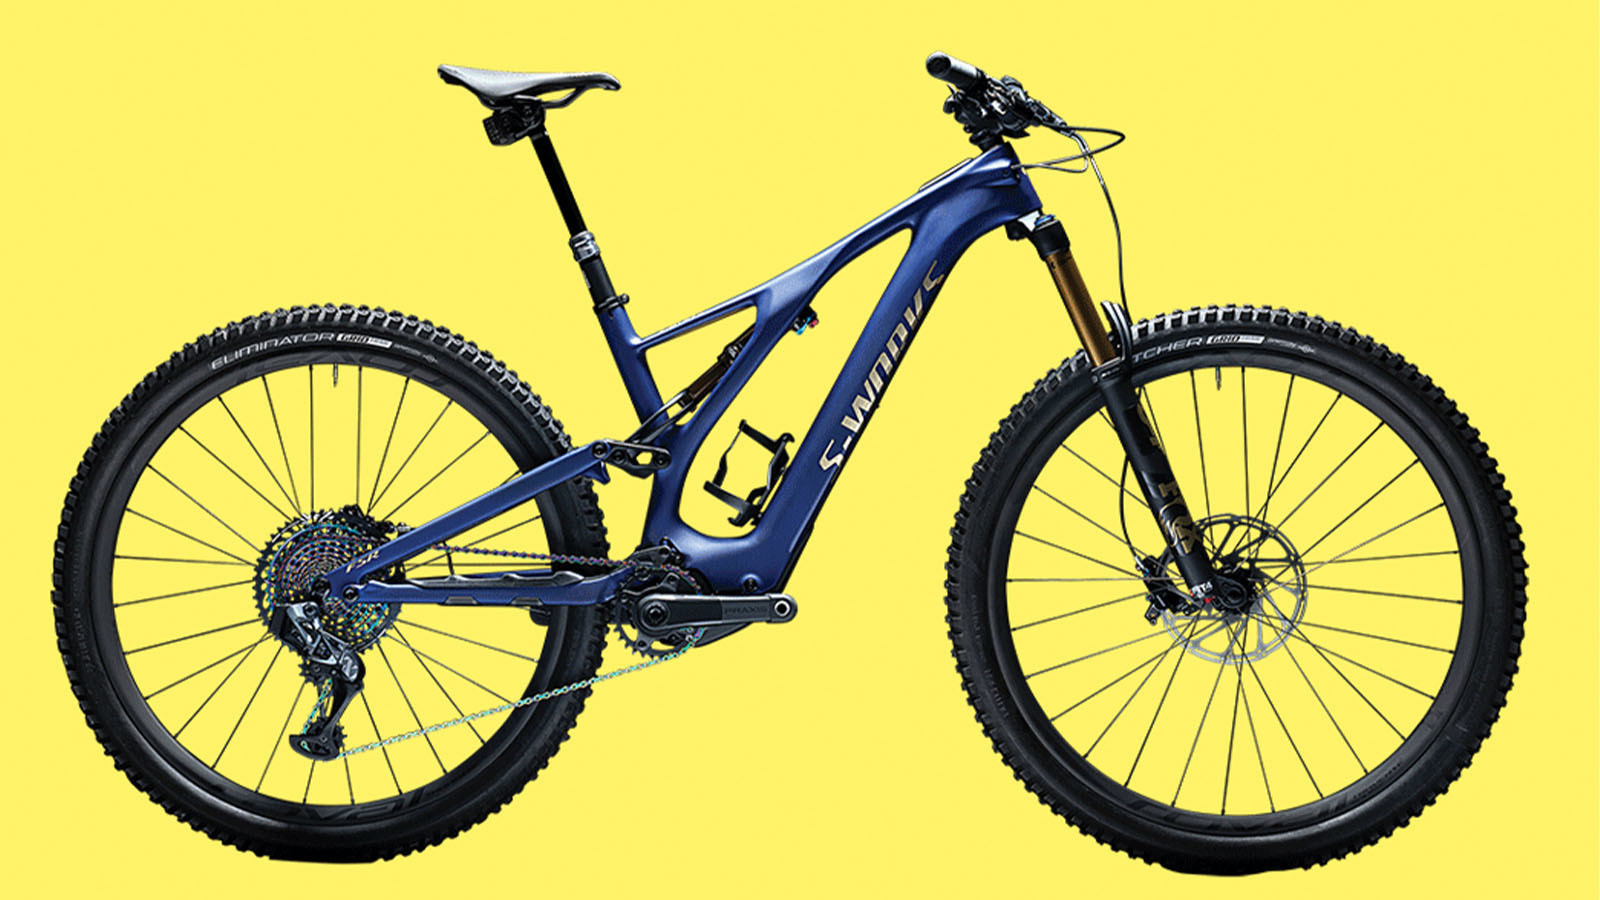 Fundraise for Trails and a Chance to Win a Specialized Levo 1600x900